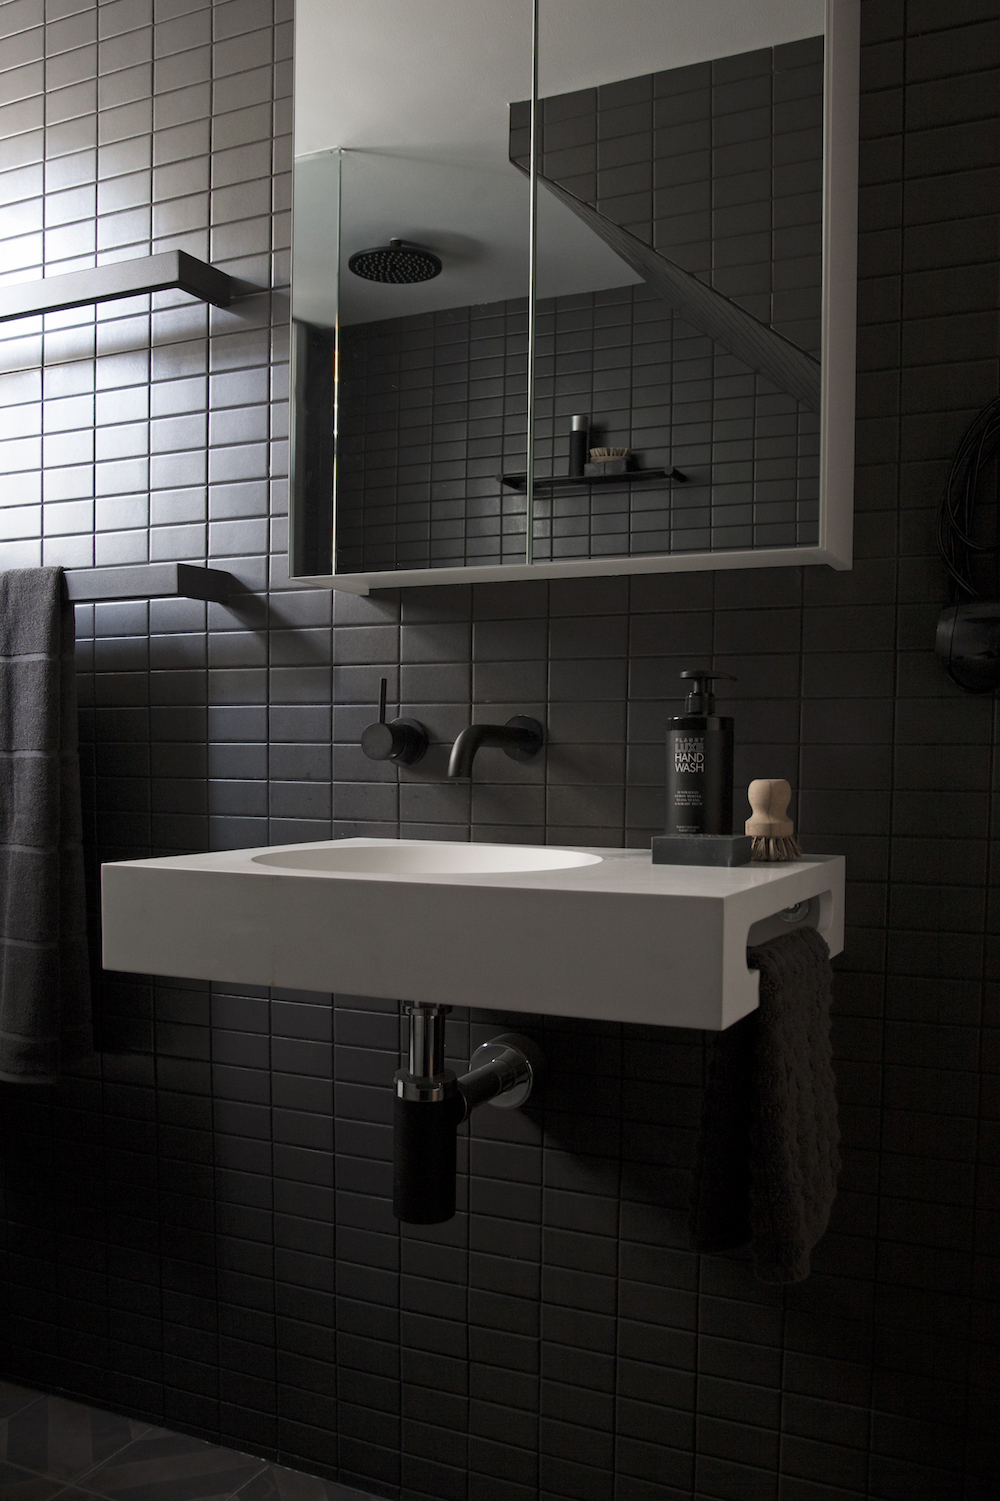 enmore-bathroom-by-kate-connors-interiors